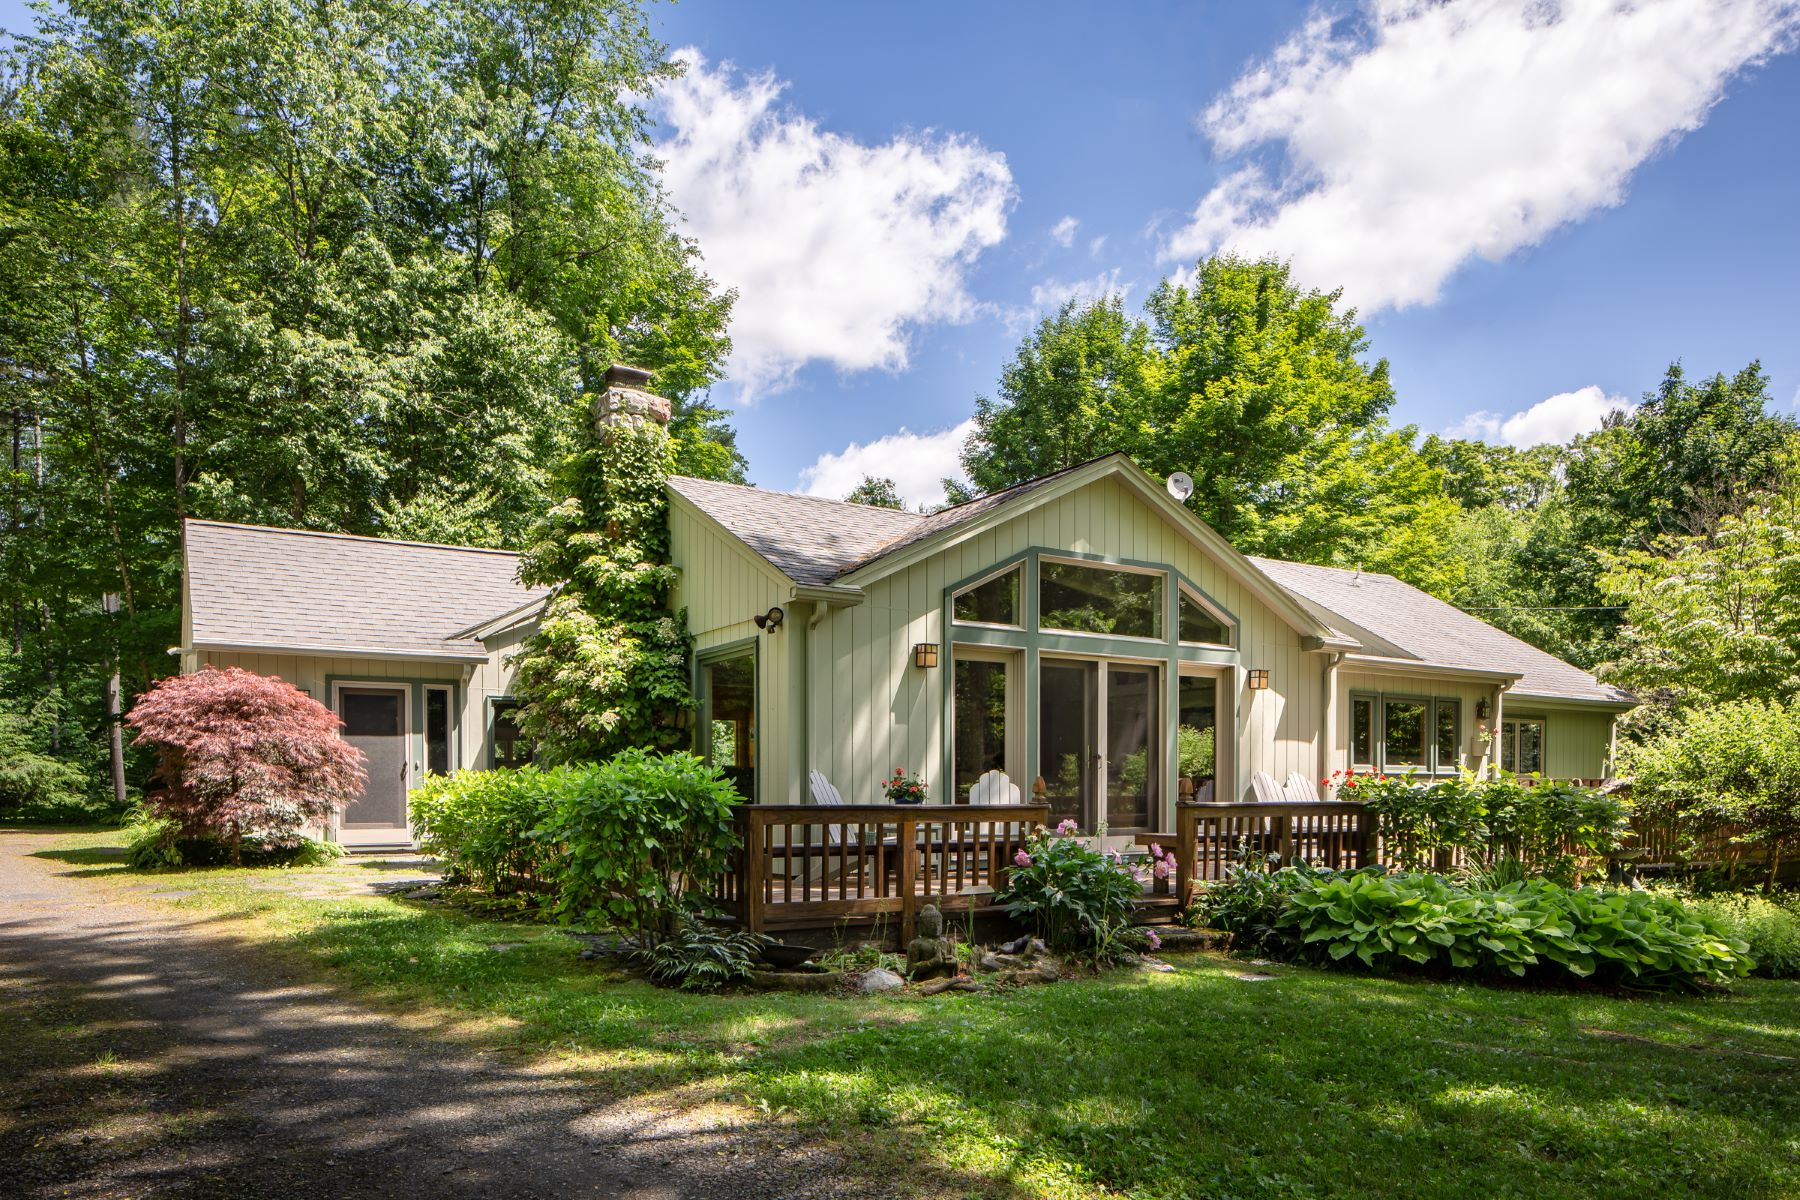 Single Family Home for Active at Enchanted Single Level Living on the Williams River 20 Wright Ln Great Barrington, Massachusetts 01230 United States